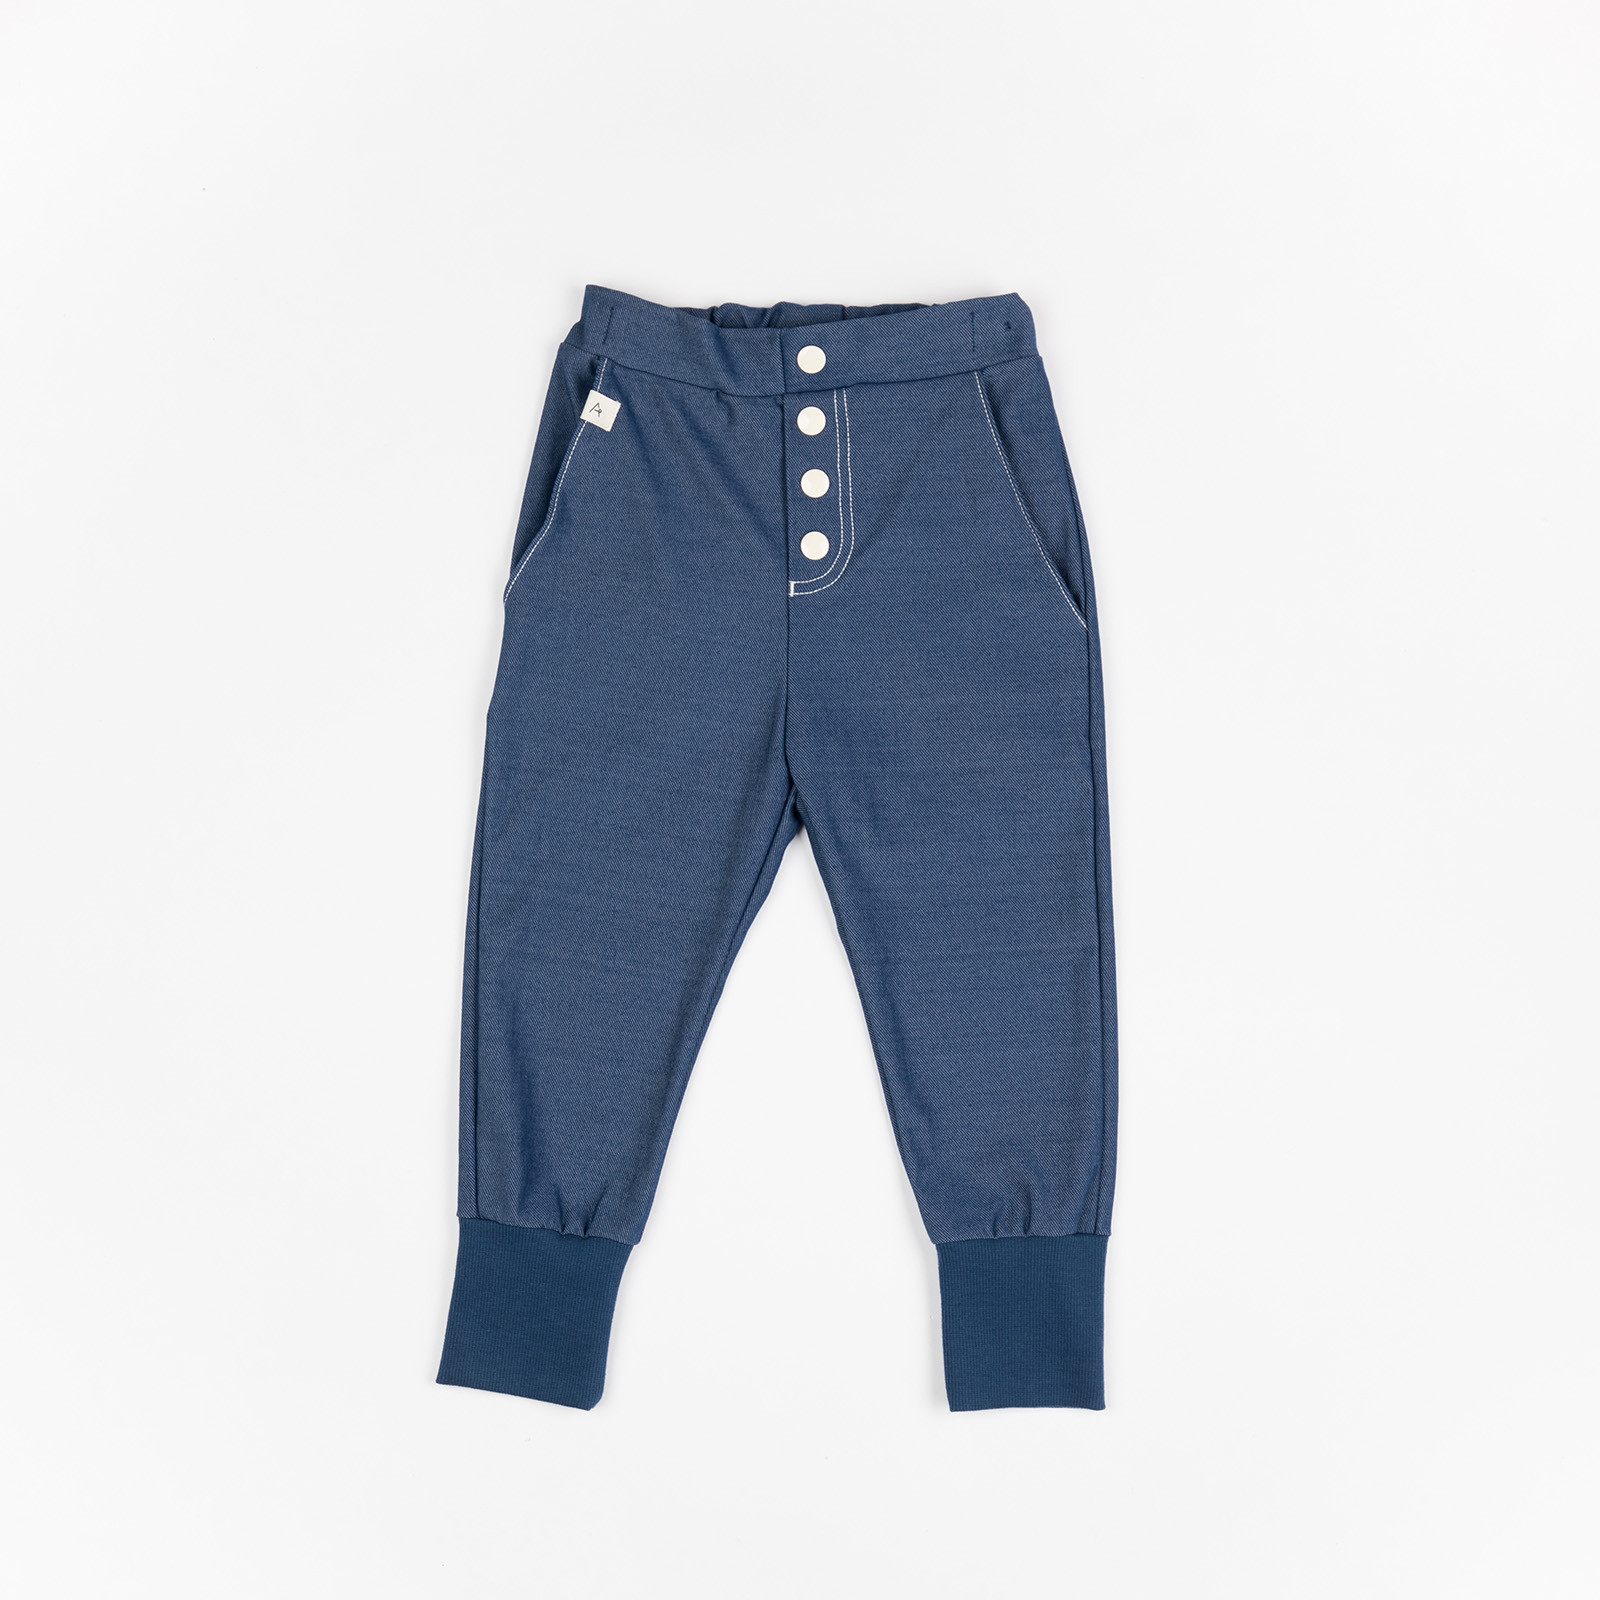 Bukser med knapper til baby - Hai Button Pants Estate Blue